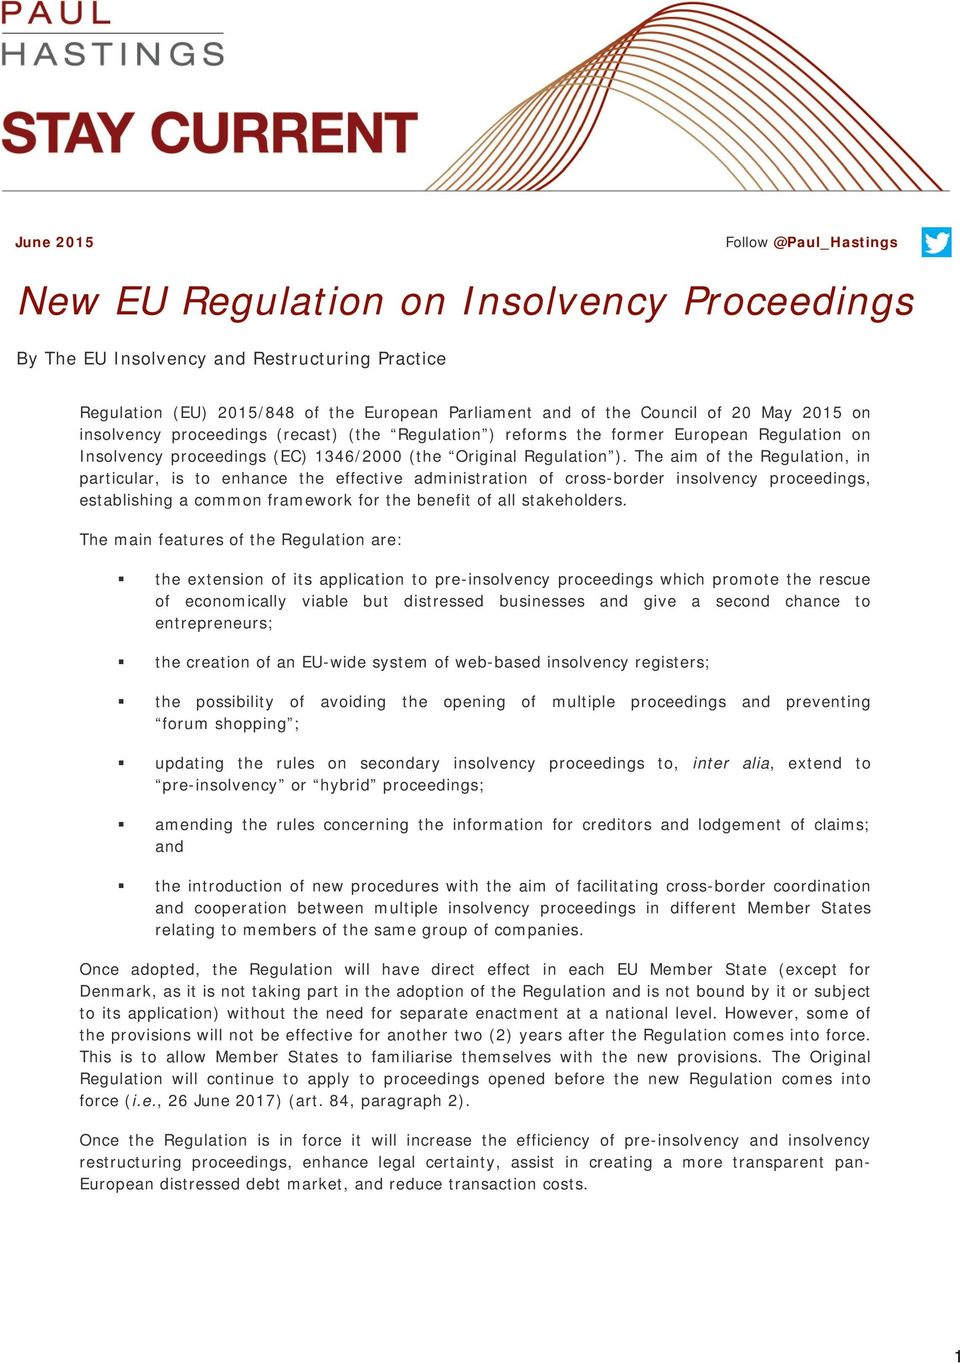 The aim of the Regulation, in particular, is to enhance the effective administration of cross-border insolvency proceedings, establishing a common framework for the benefit of all stakeholders.